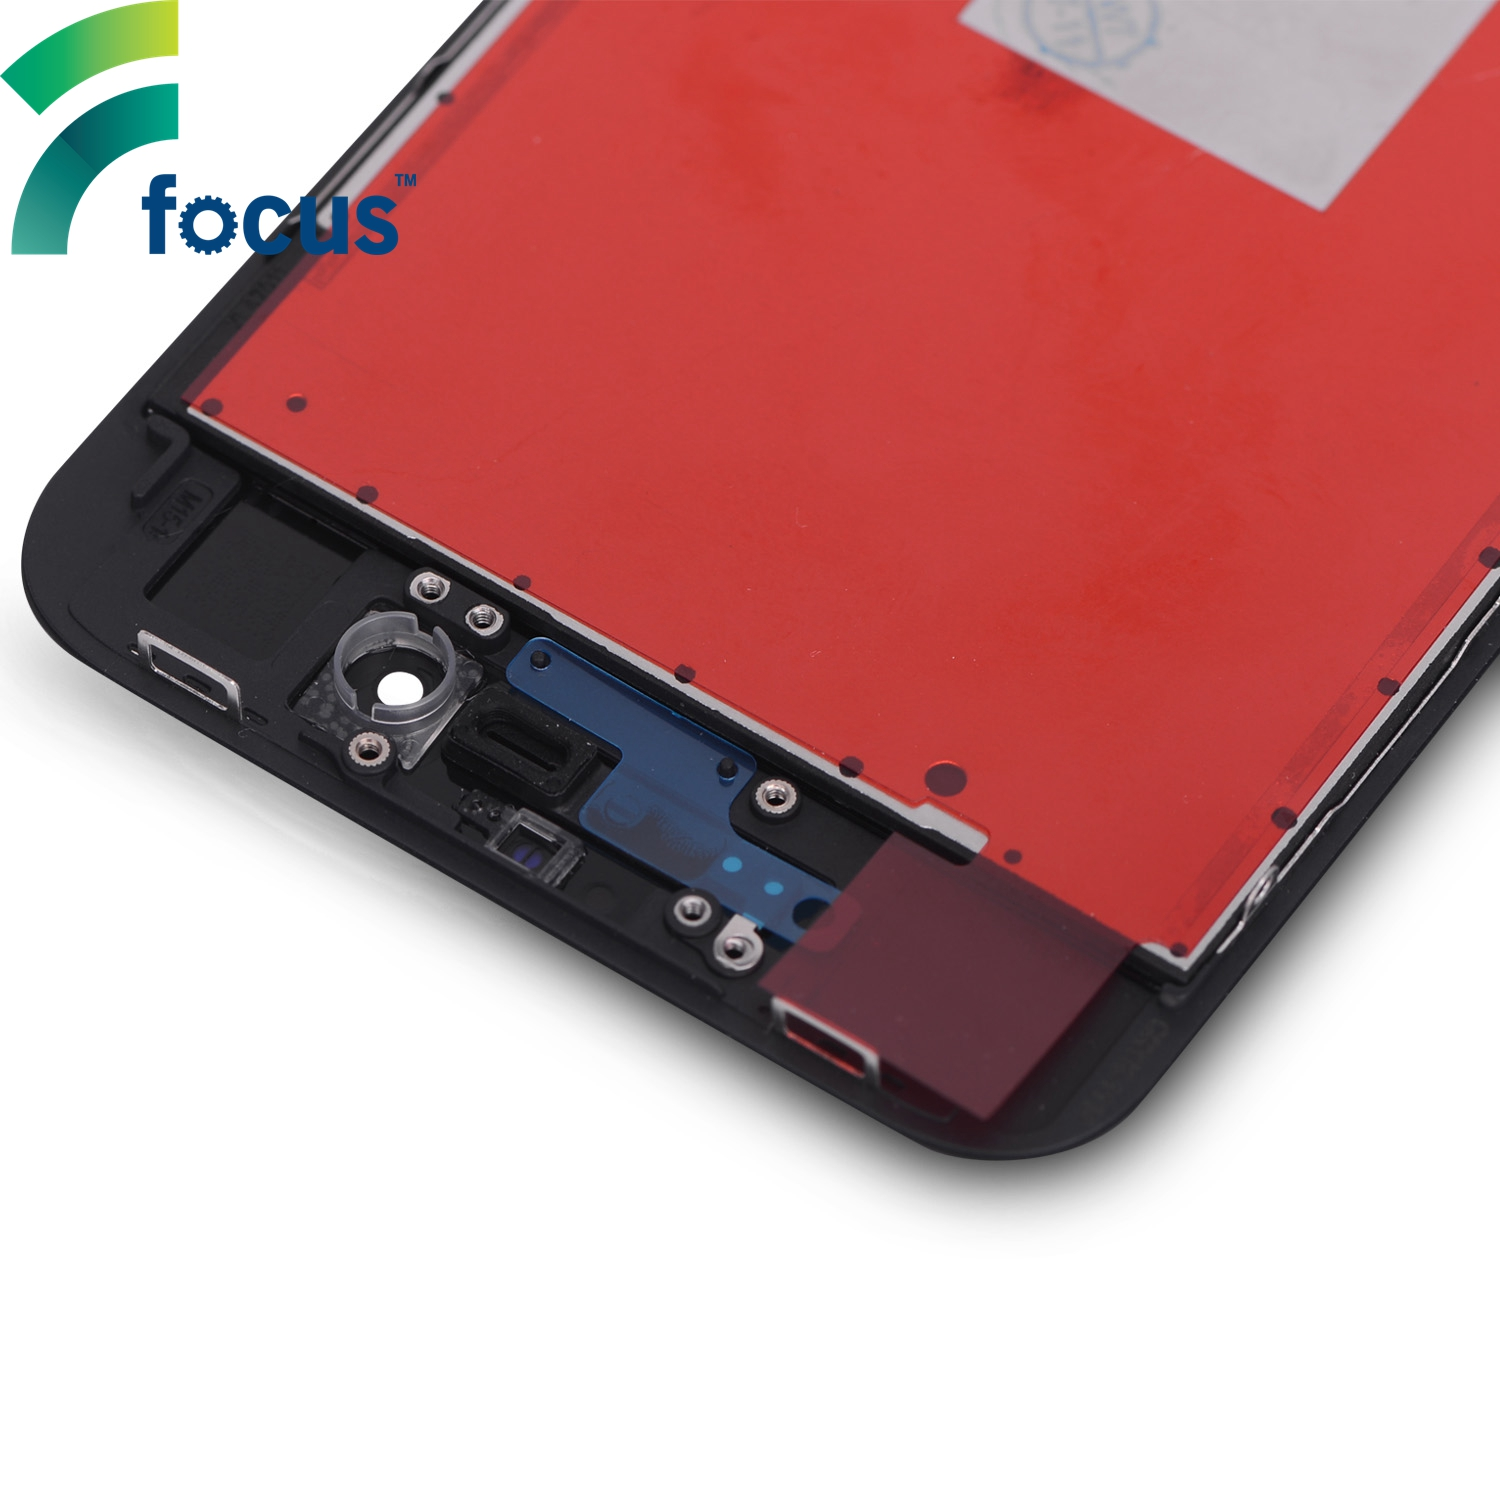 Tianma המקורי מסך עבור Iphone Lcd, במפעל עבור Iphone 6 7 8 X Lcd תצוגה